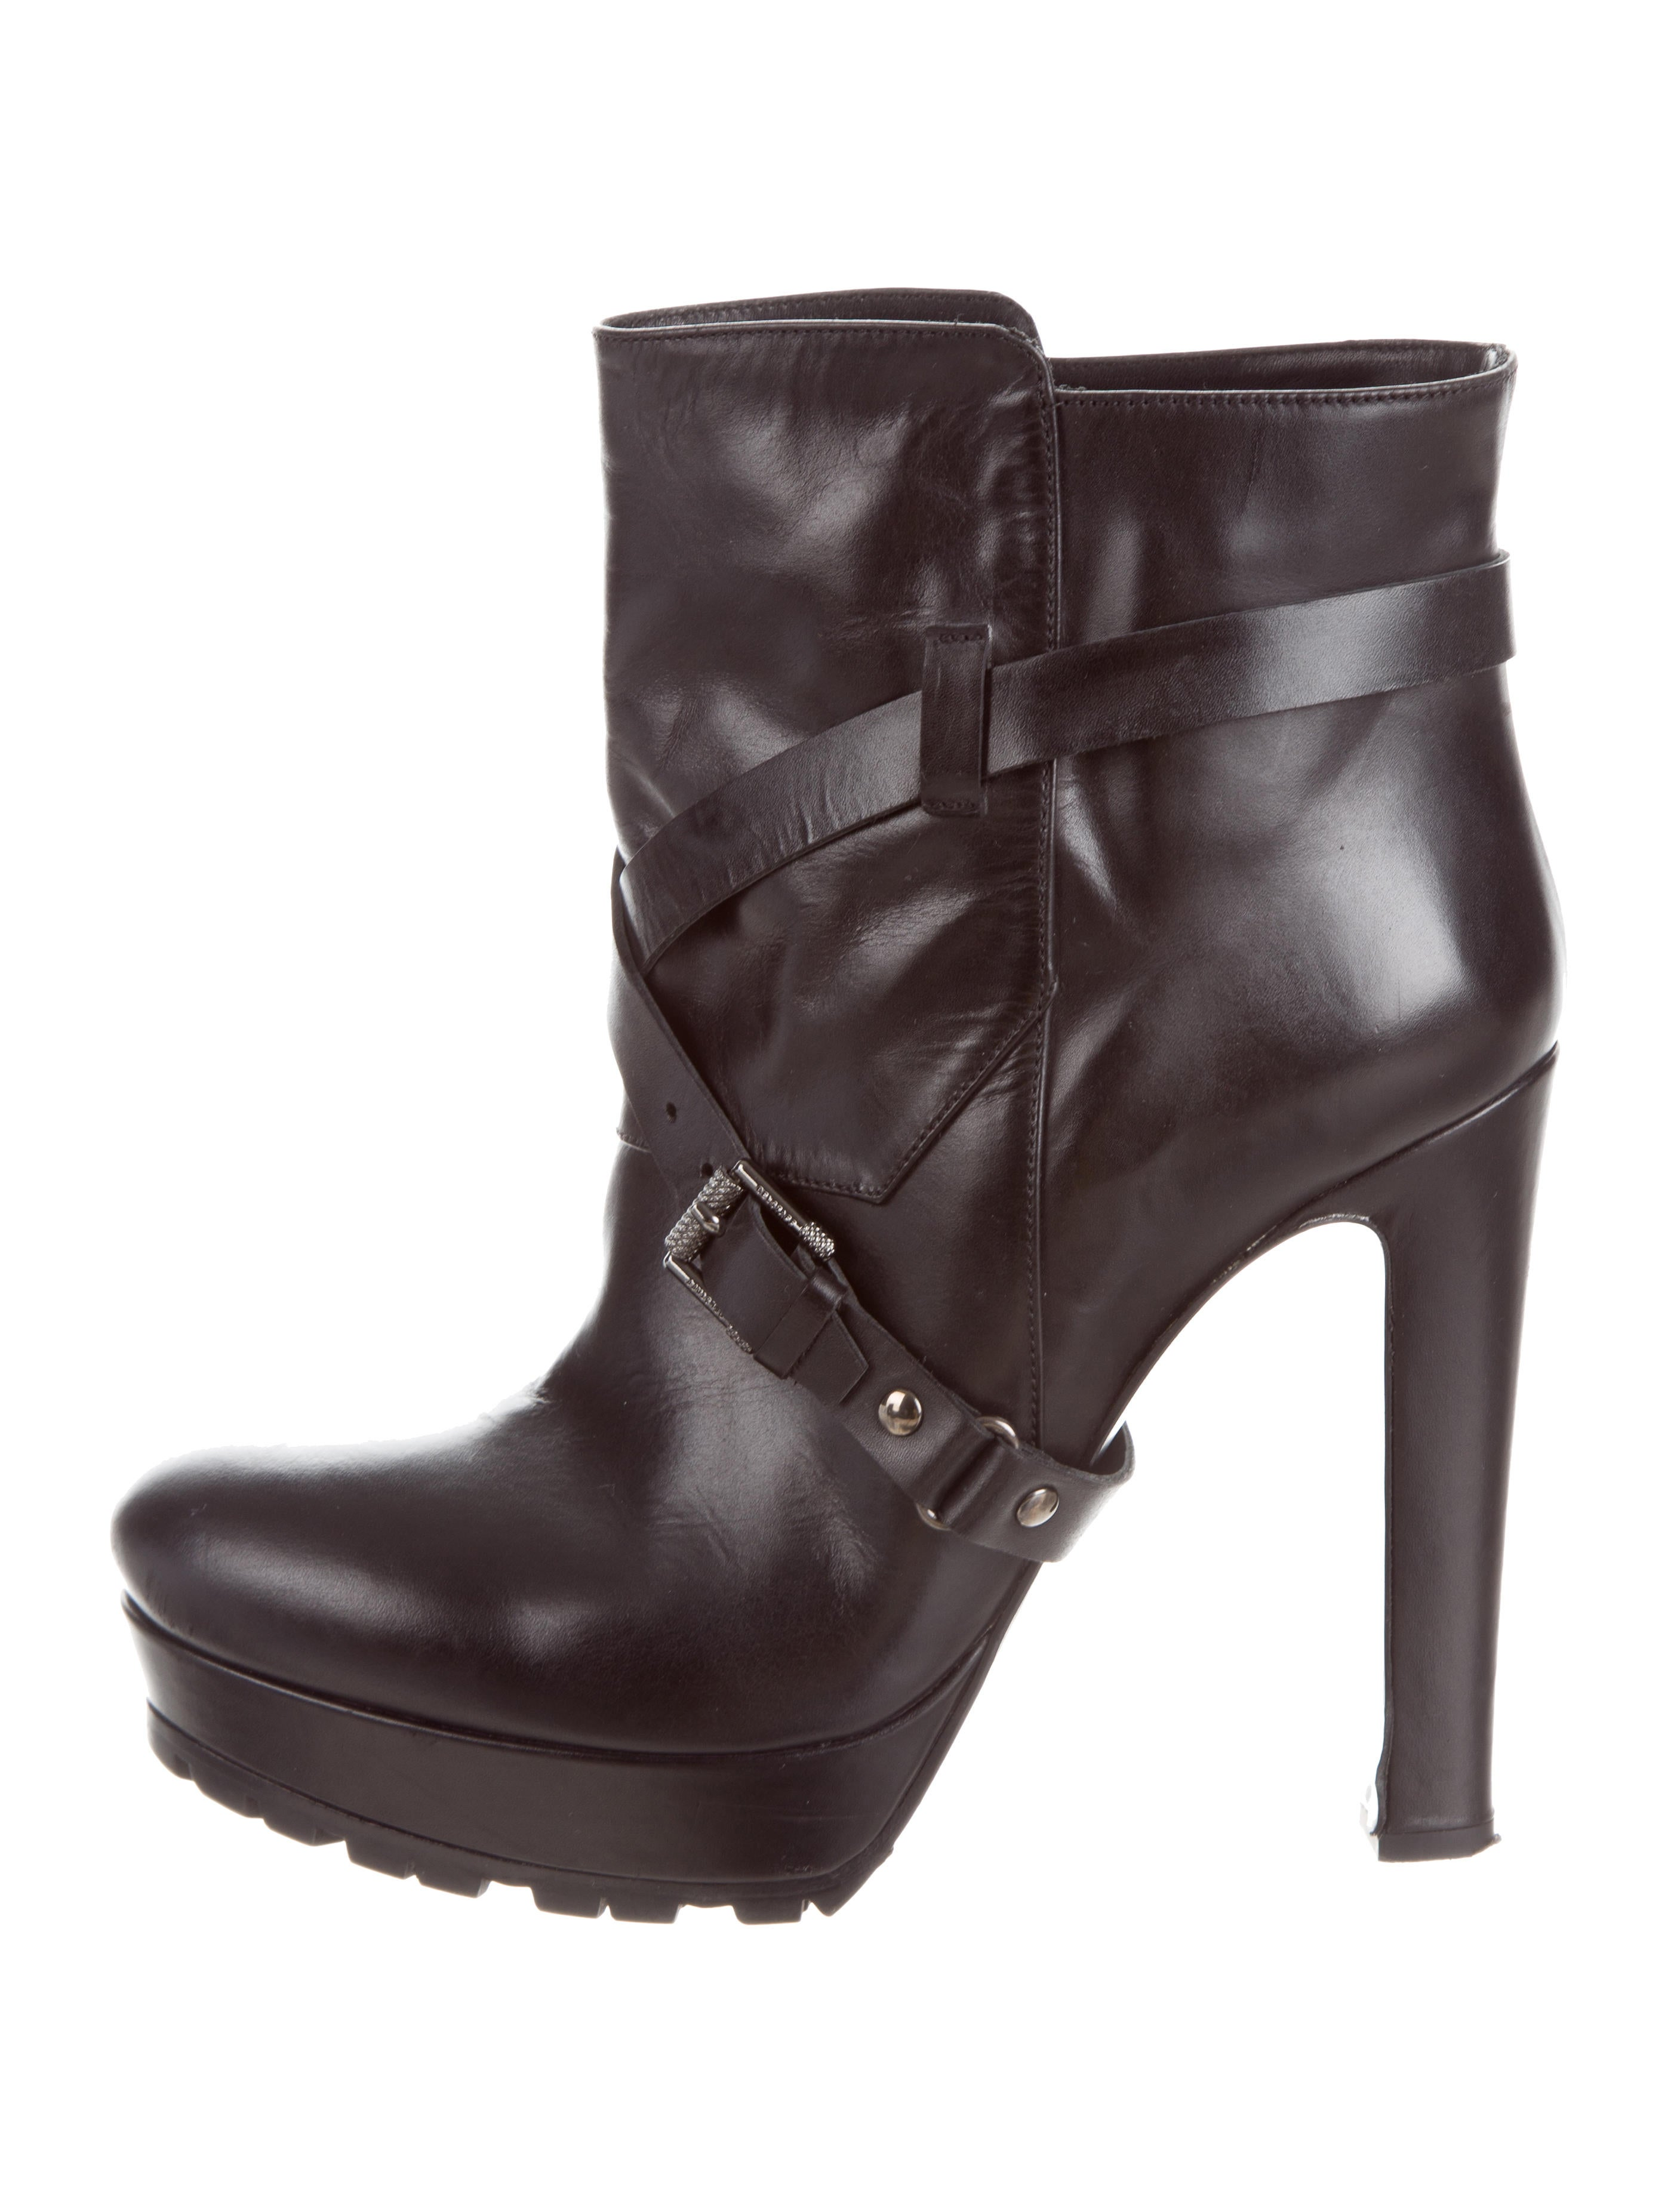 Shop for Lace Up Platform Short Boots in ARMY GREEN EU 36 of Boots and check + hottest styles at TOPVOP. A site with wide selection of trendy fashion style women's clothing, especially swimwear in all kinds which costs at an affordable price.